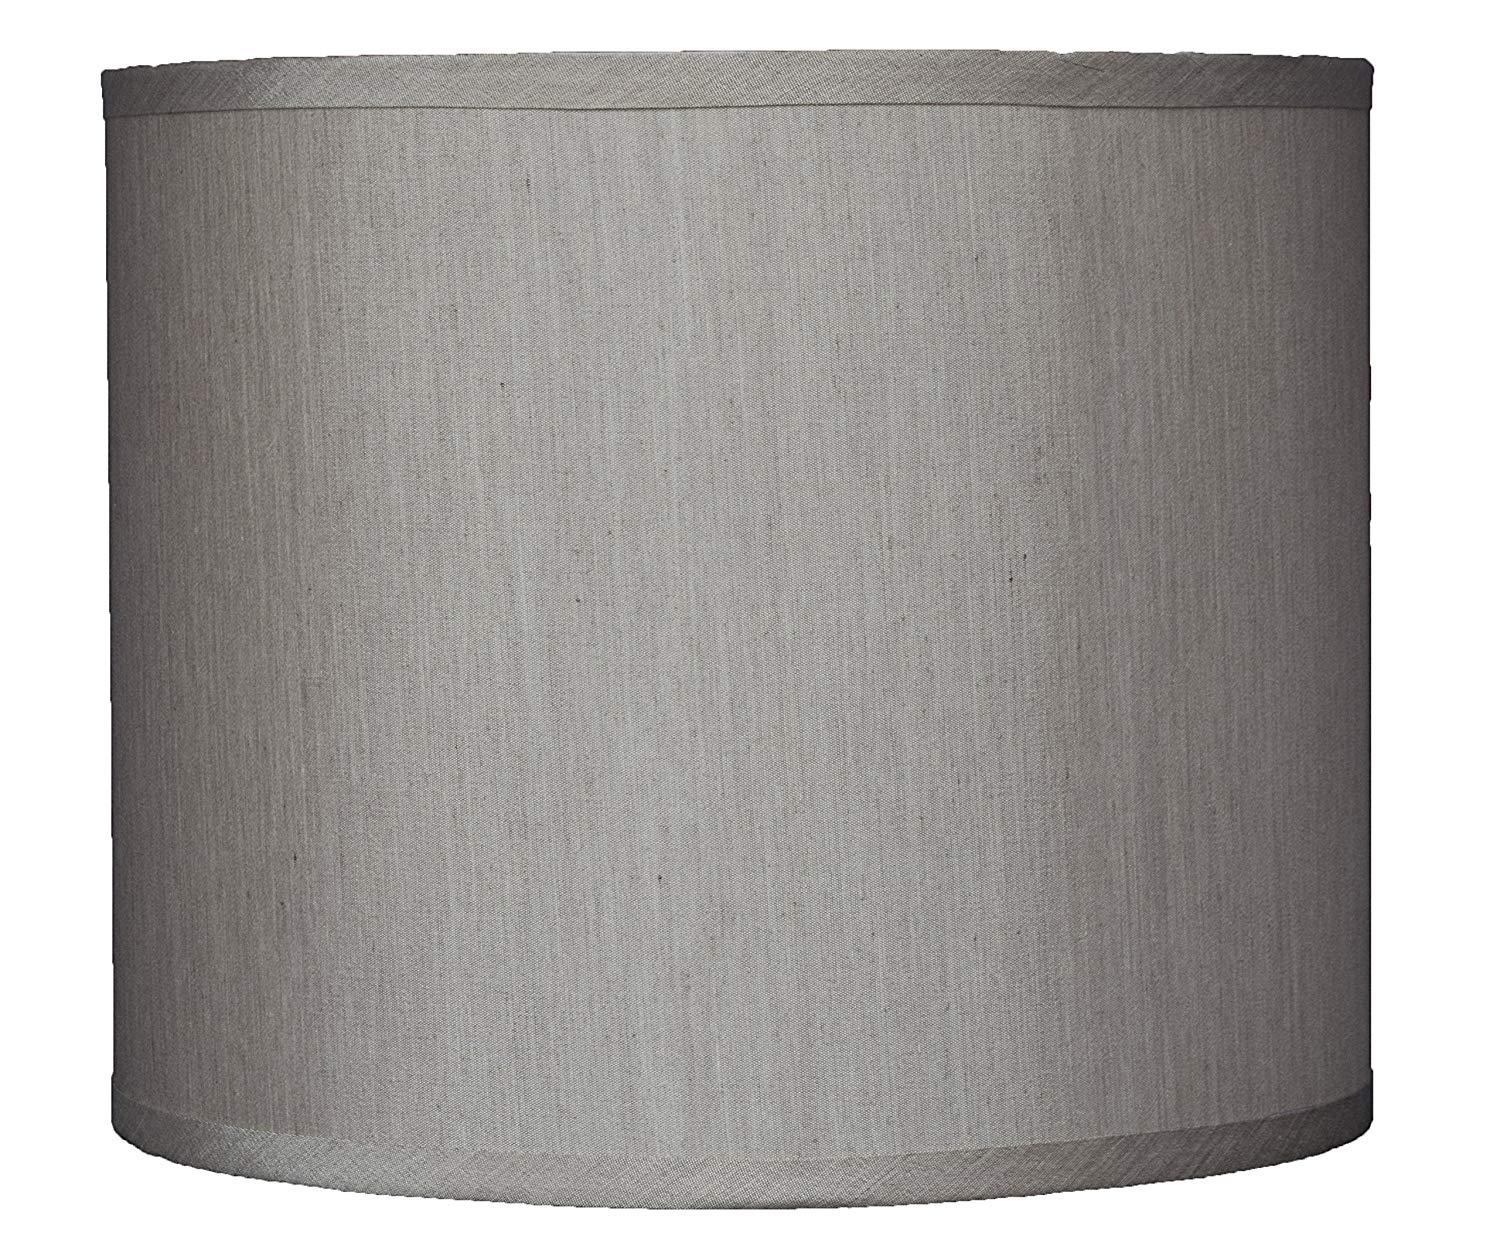 Faux Silk Drum Lampshade, 12-inch By 12-inch By 10-inch, Spider Fitter